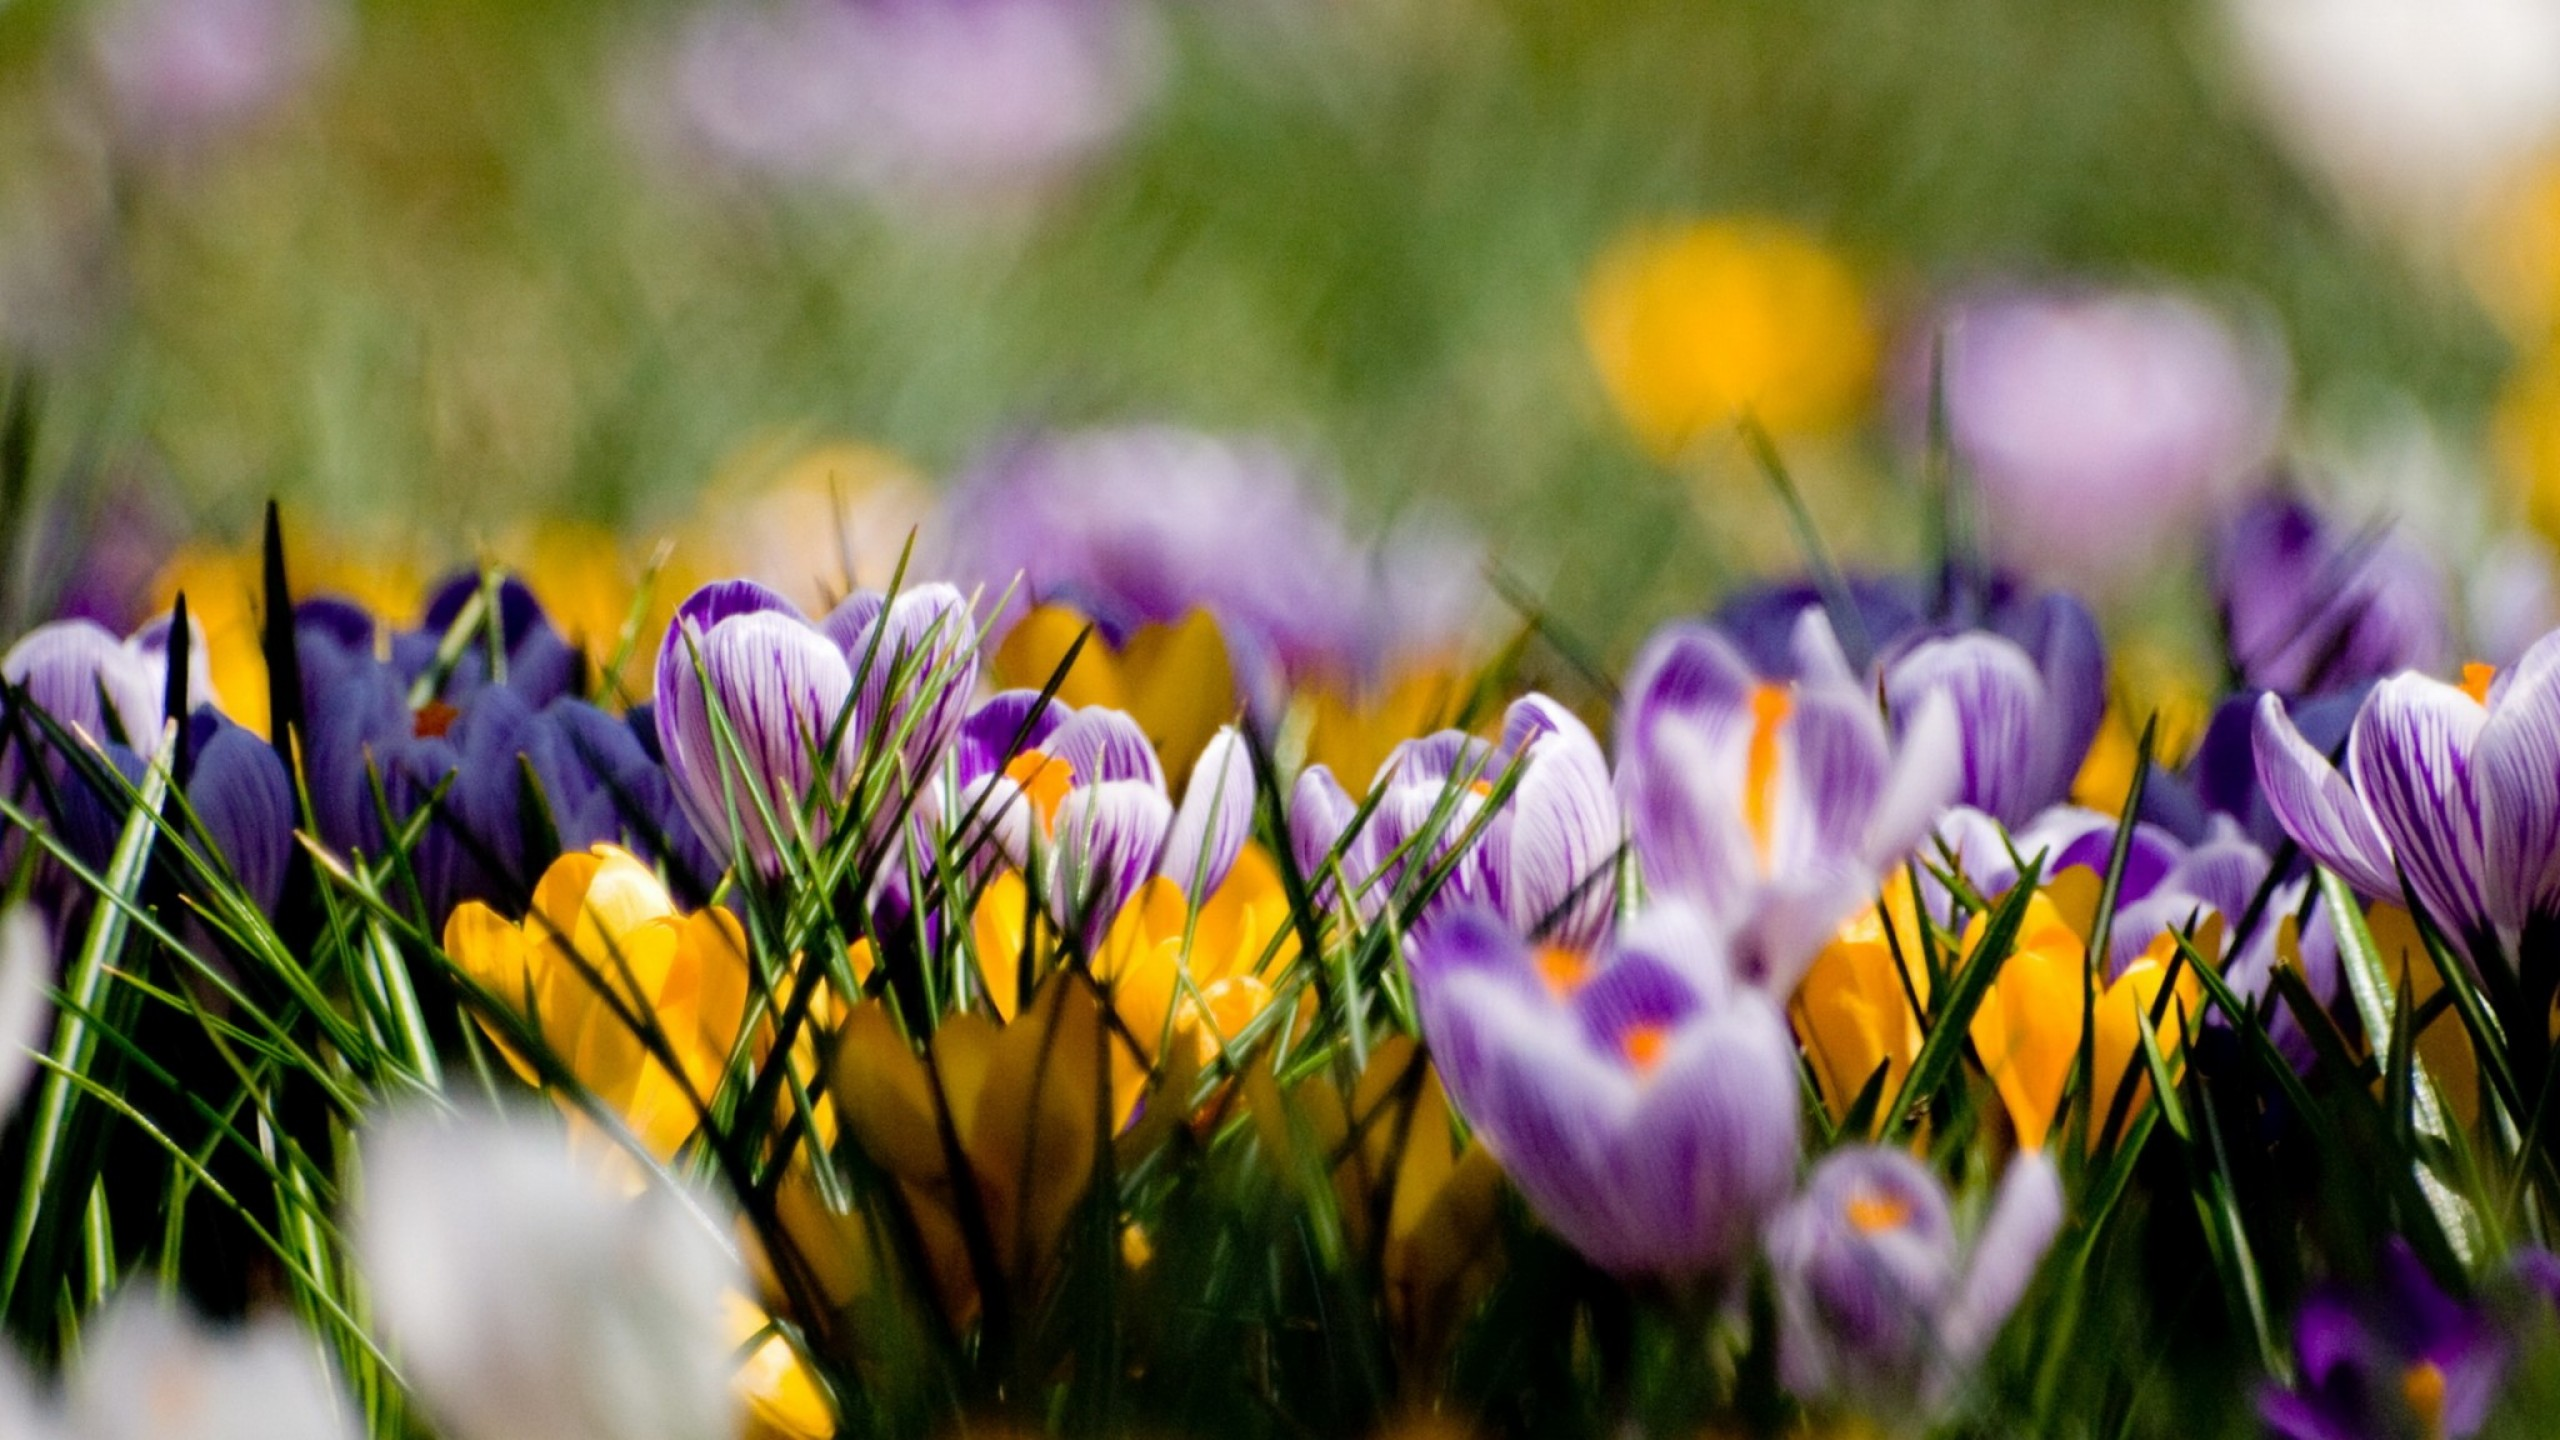 35 Beautiful Spring Pictures And Wallpapers: Beautiful Spring Wallpapers, Pictures, Images